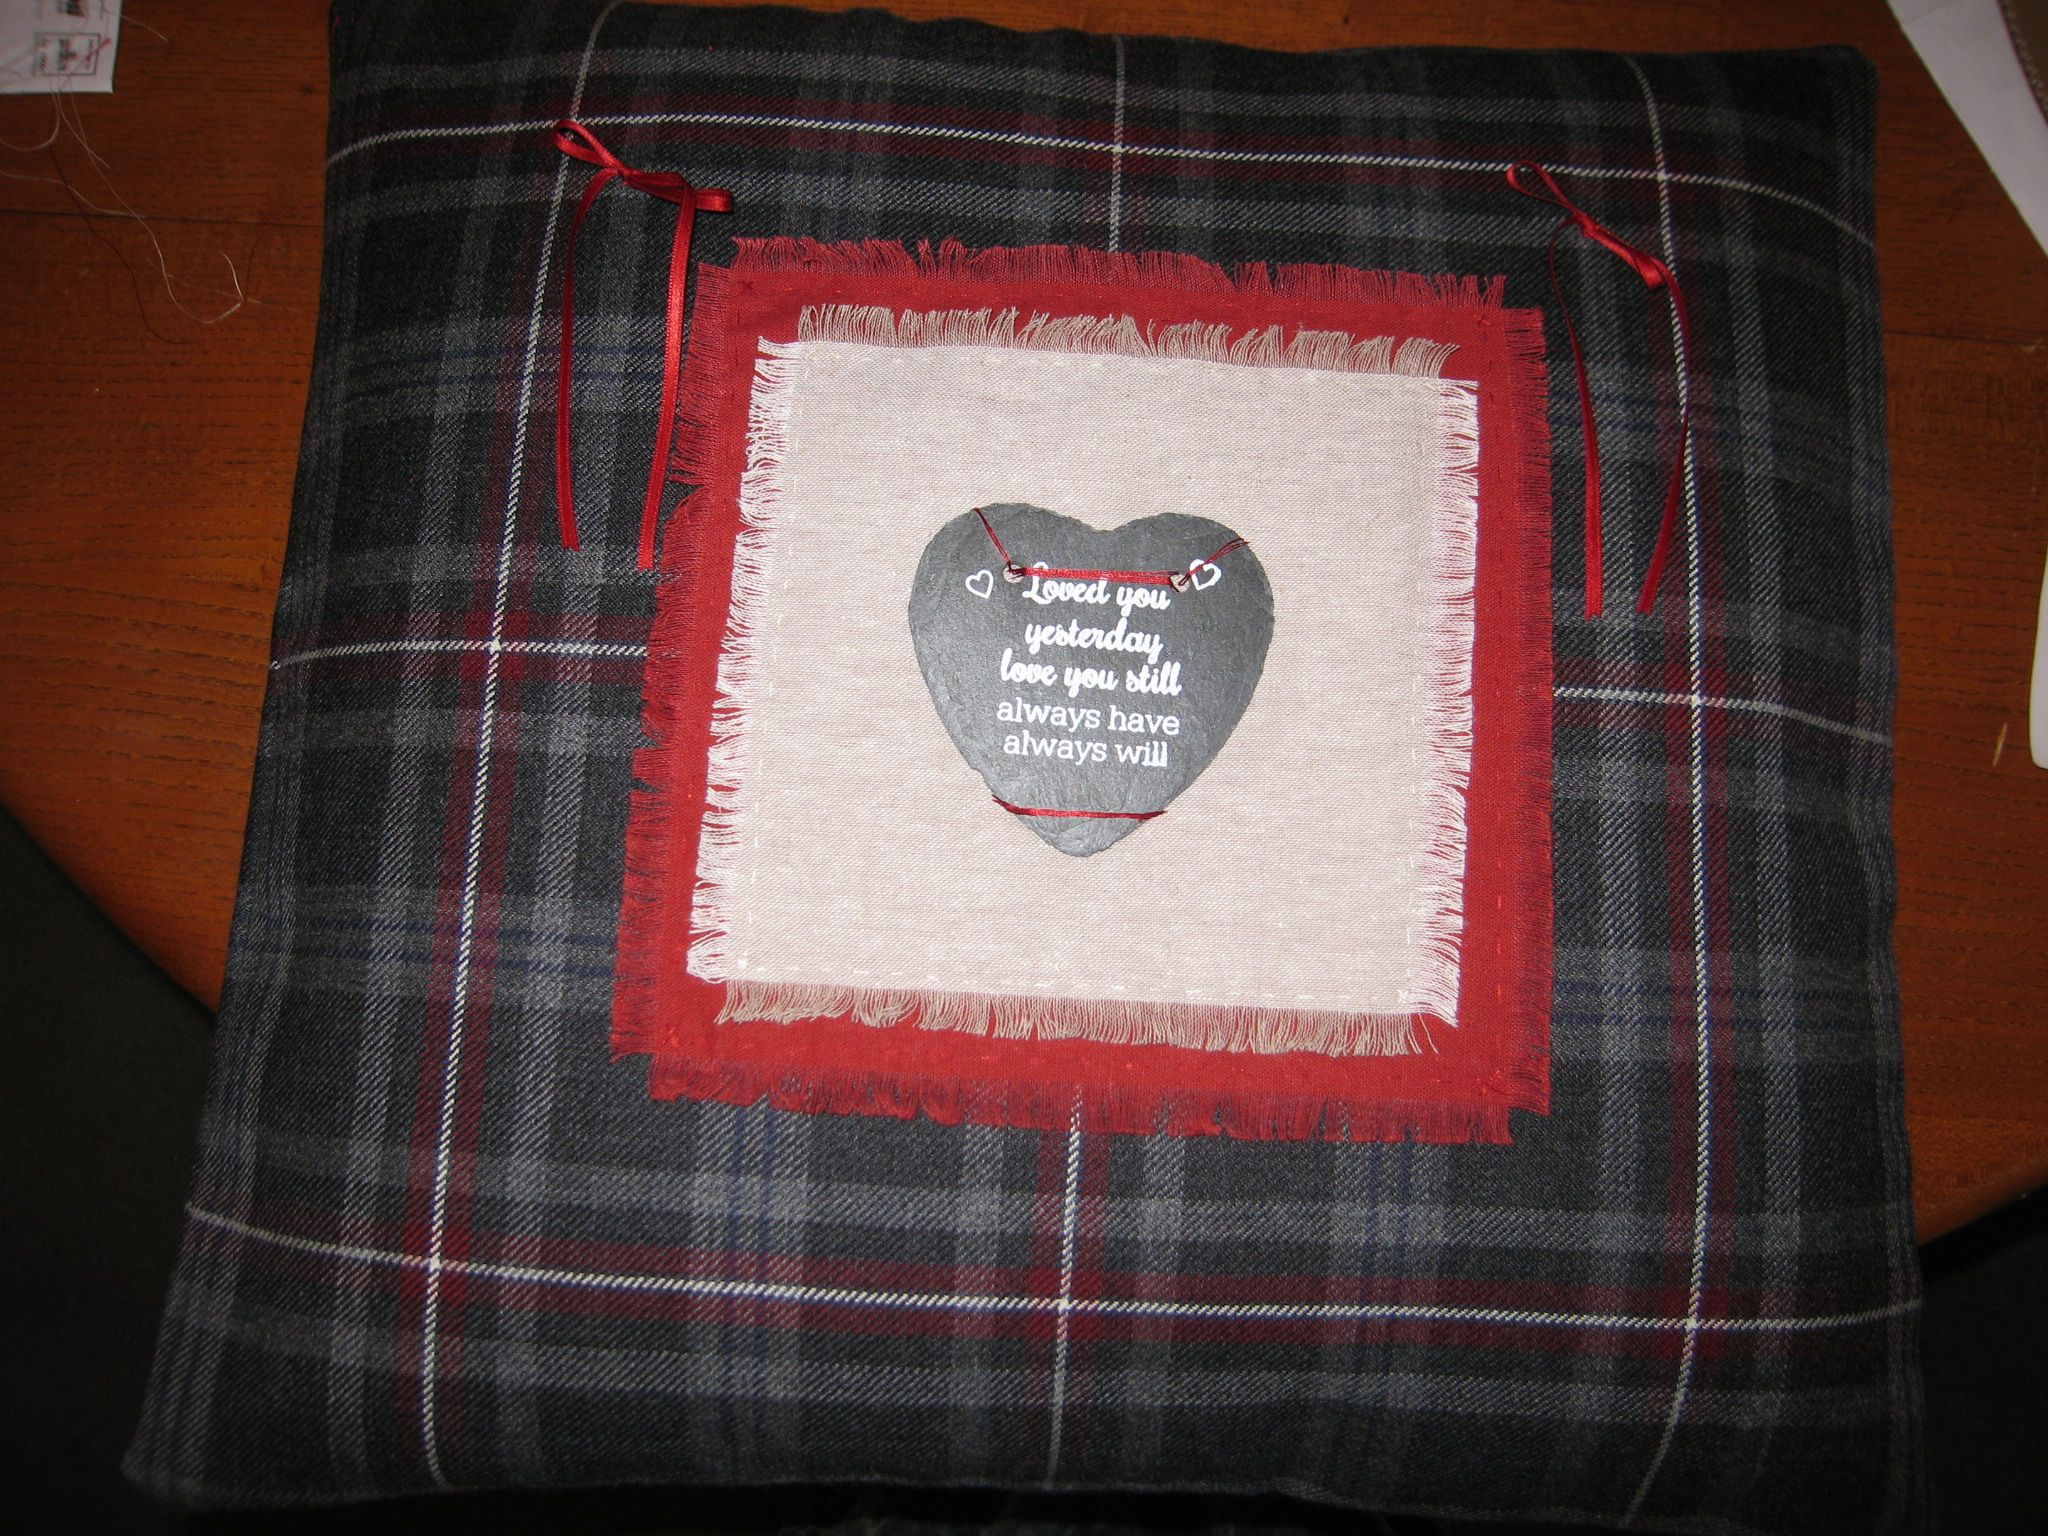 Wedding ring cushion made for friends with hebridean heather tartan